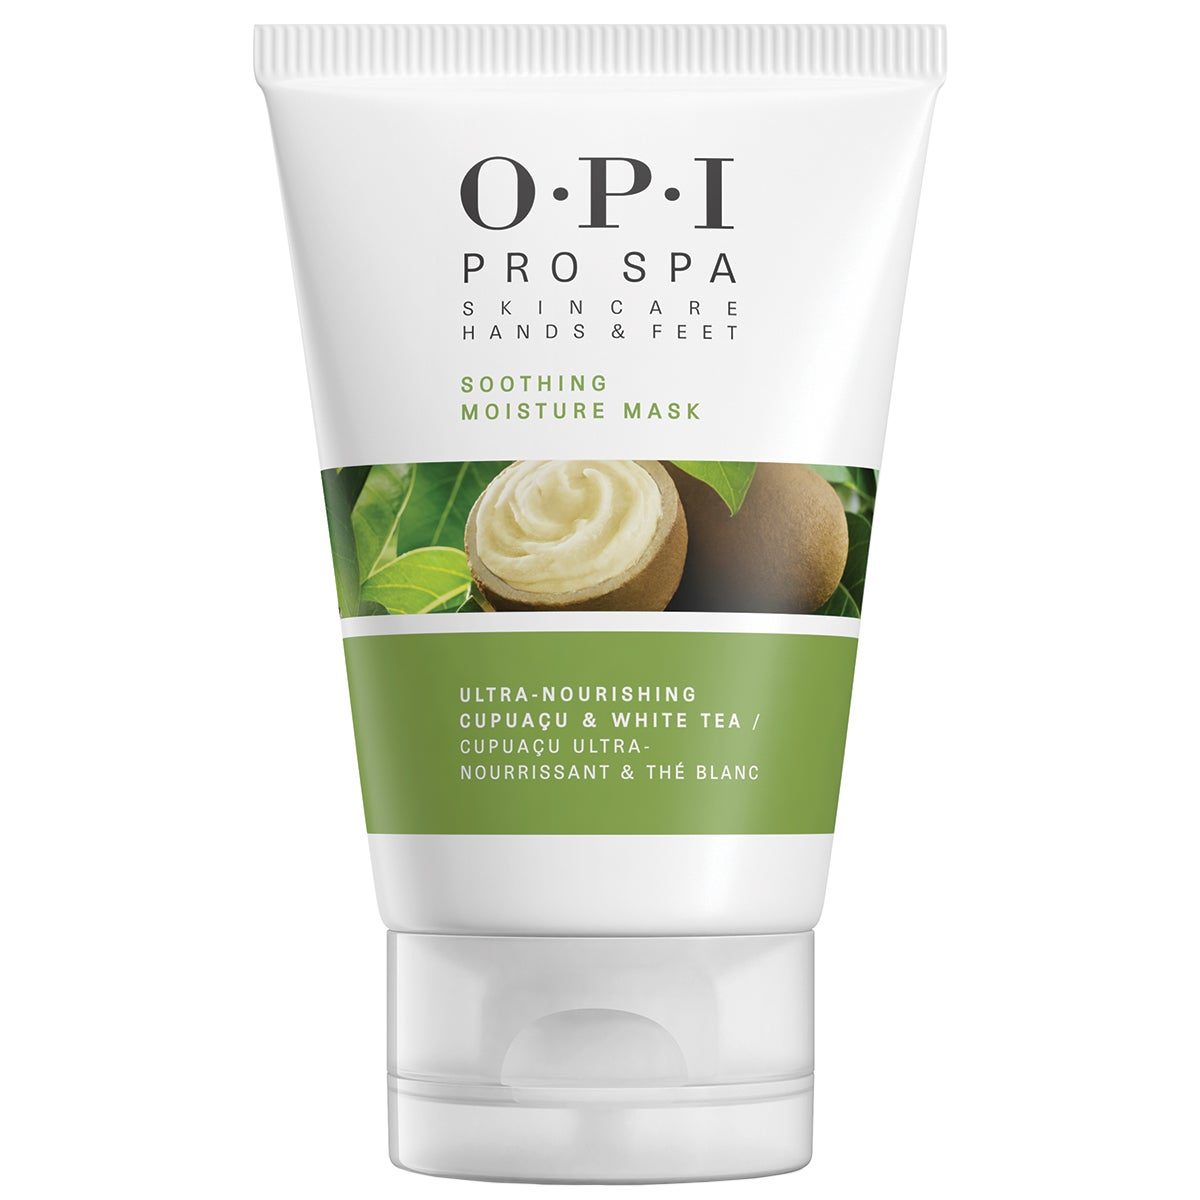 Pro Spa Soothing Moisture Mask, 118 ml OPI Handkräm